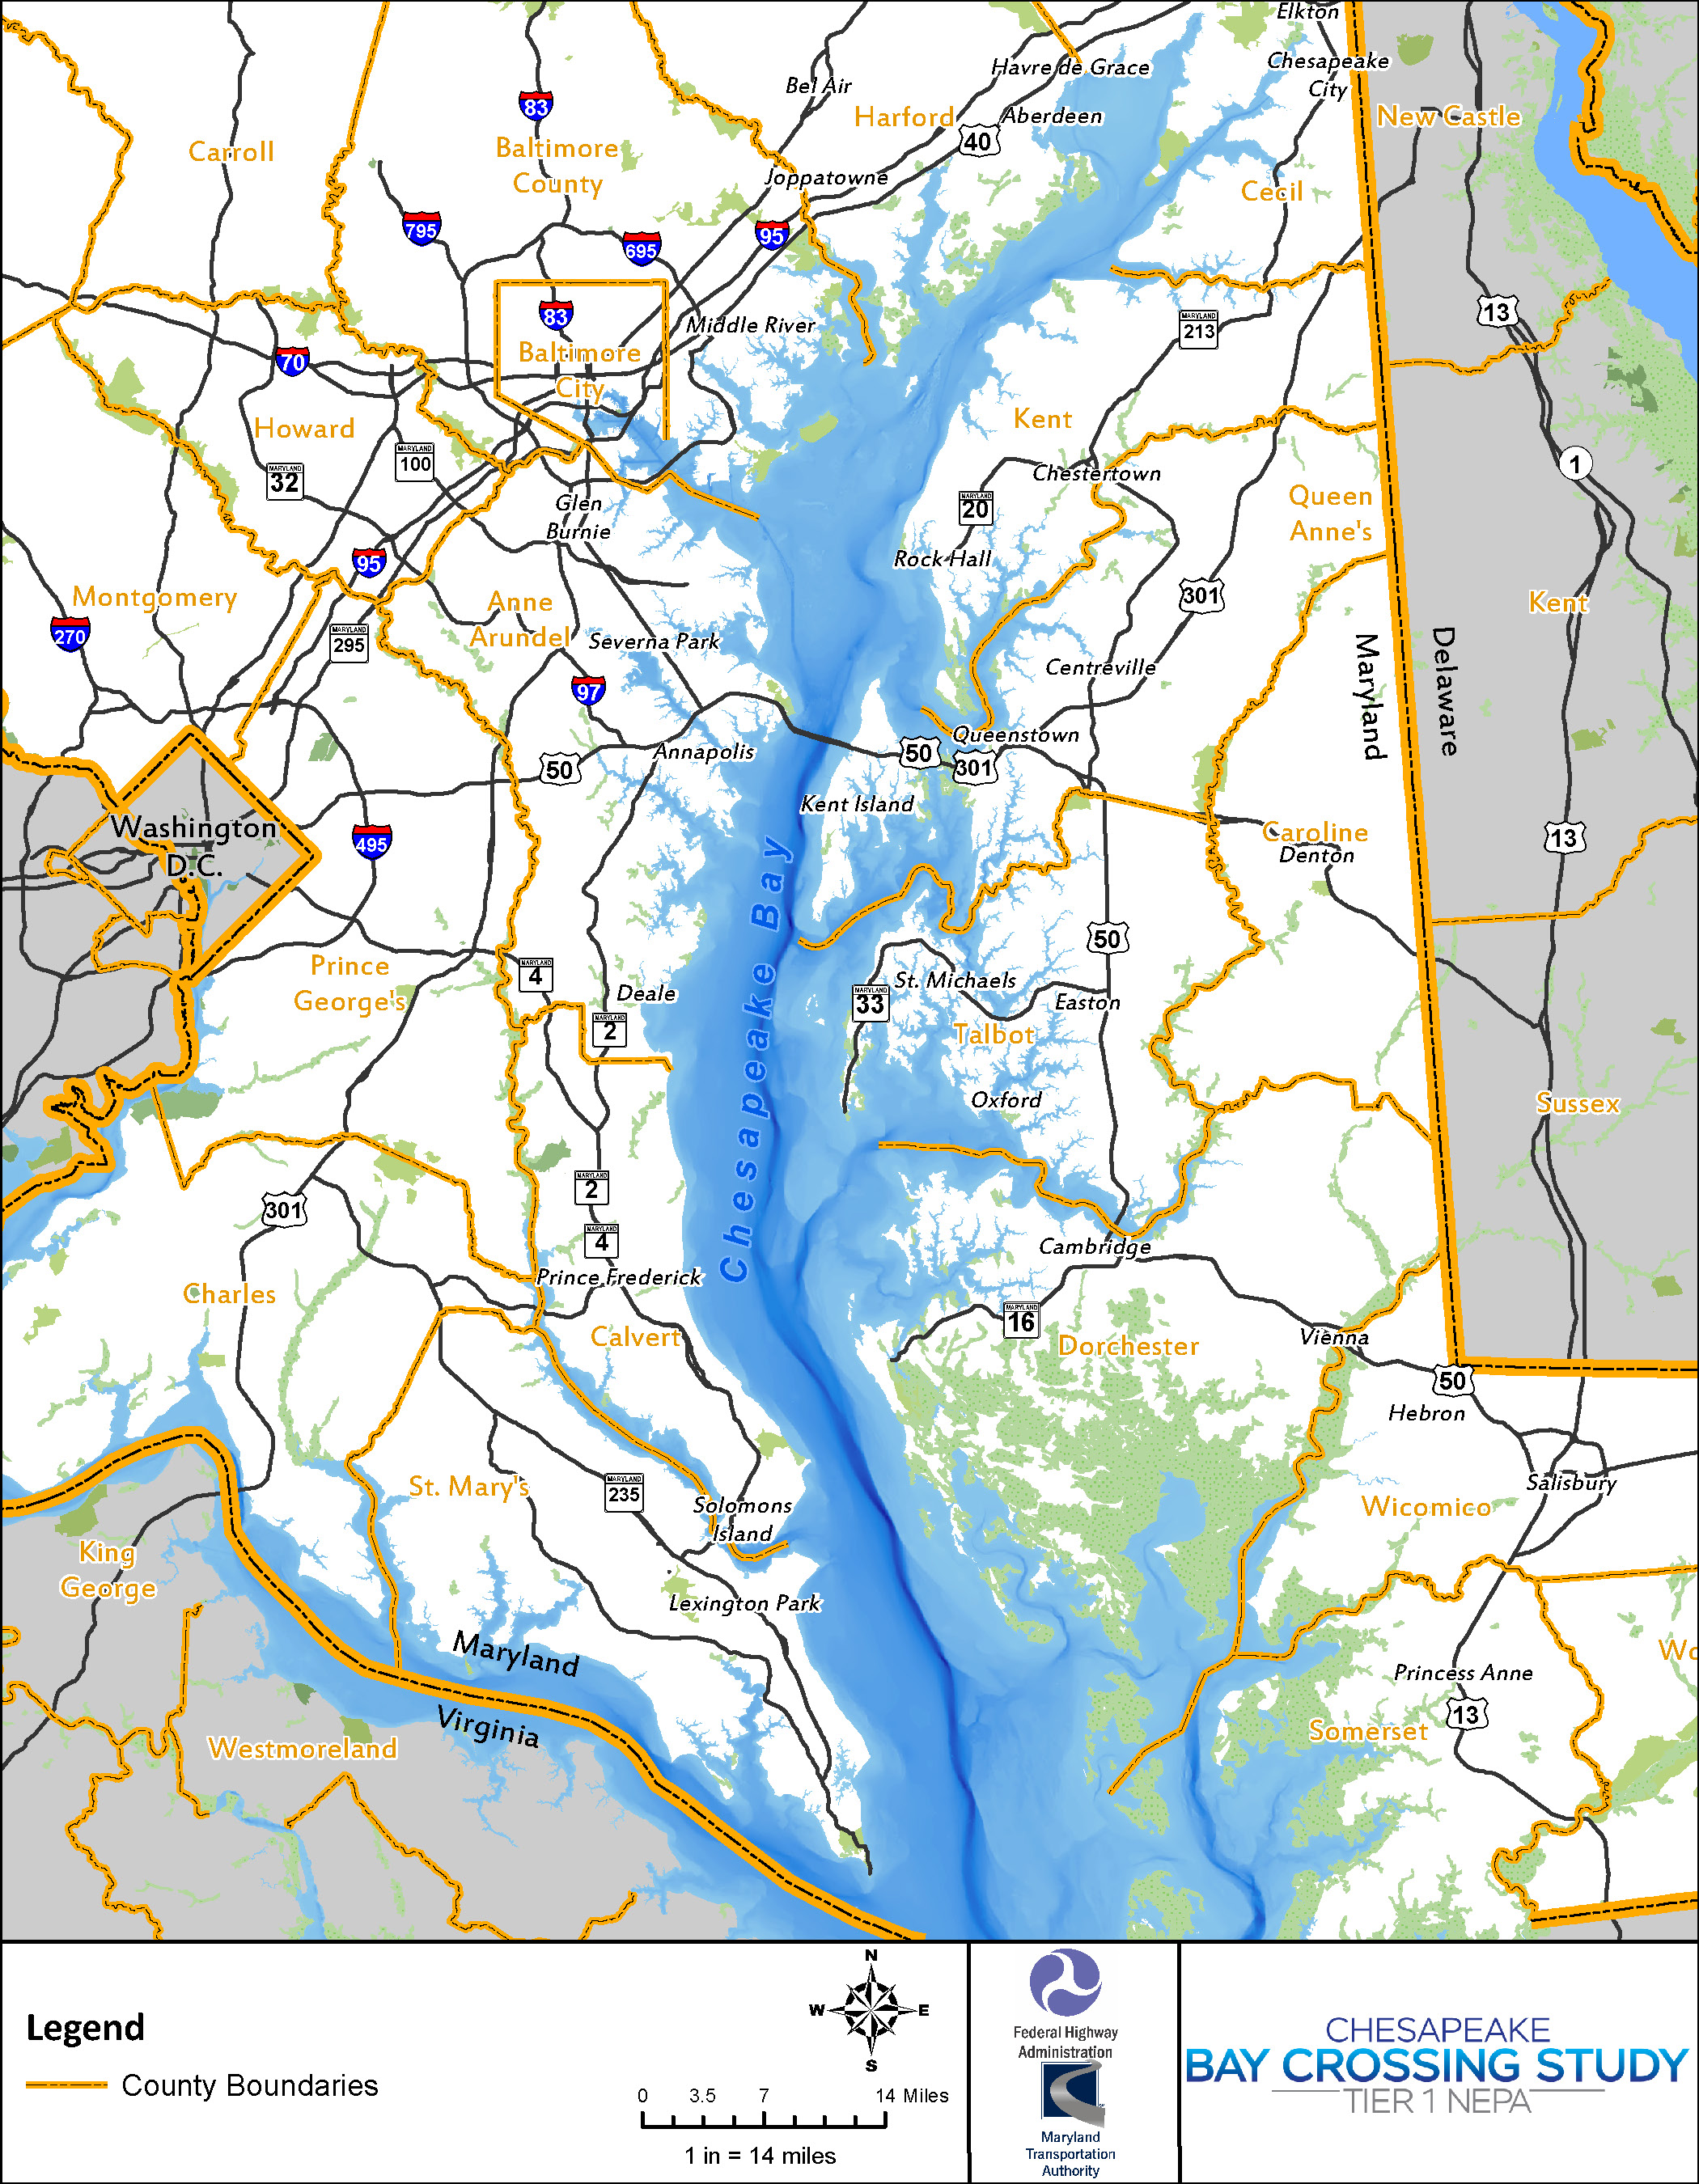 Study Area Map - MDOT MDTA Chesapeake Bay Crossing Study on mobile bay map, james river, chesapeake bay bridge, maryland map, delaware map, ohio river, usa map, baltimore map, hudson bay, columbia river, delaware bay, delaware river, virginia map, chesapeake bay bridge-tunnel, intracoastal waterway map, great lakes, sierra nevada, appalachian mountains, hudson river, bering sea map, gulf of mexico map, united states map, susquehanna river, france map, arkansas map, potomac river, san francisco bay, alaska map, gulf of mexico, great lakes map, mississippi map, great basin map, atlantic map, river map, bristol bay map, missouri river, puget sound map, virginia beach,